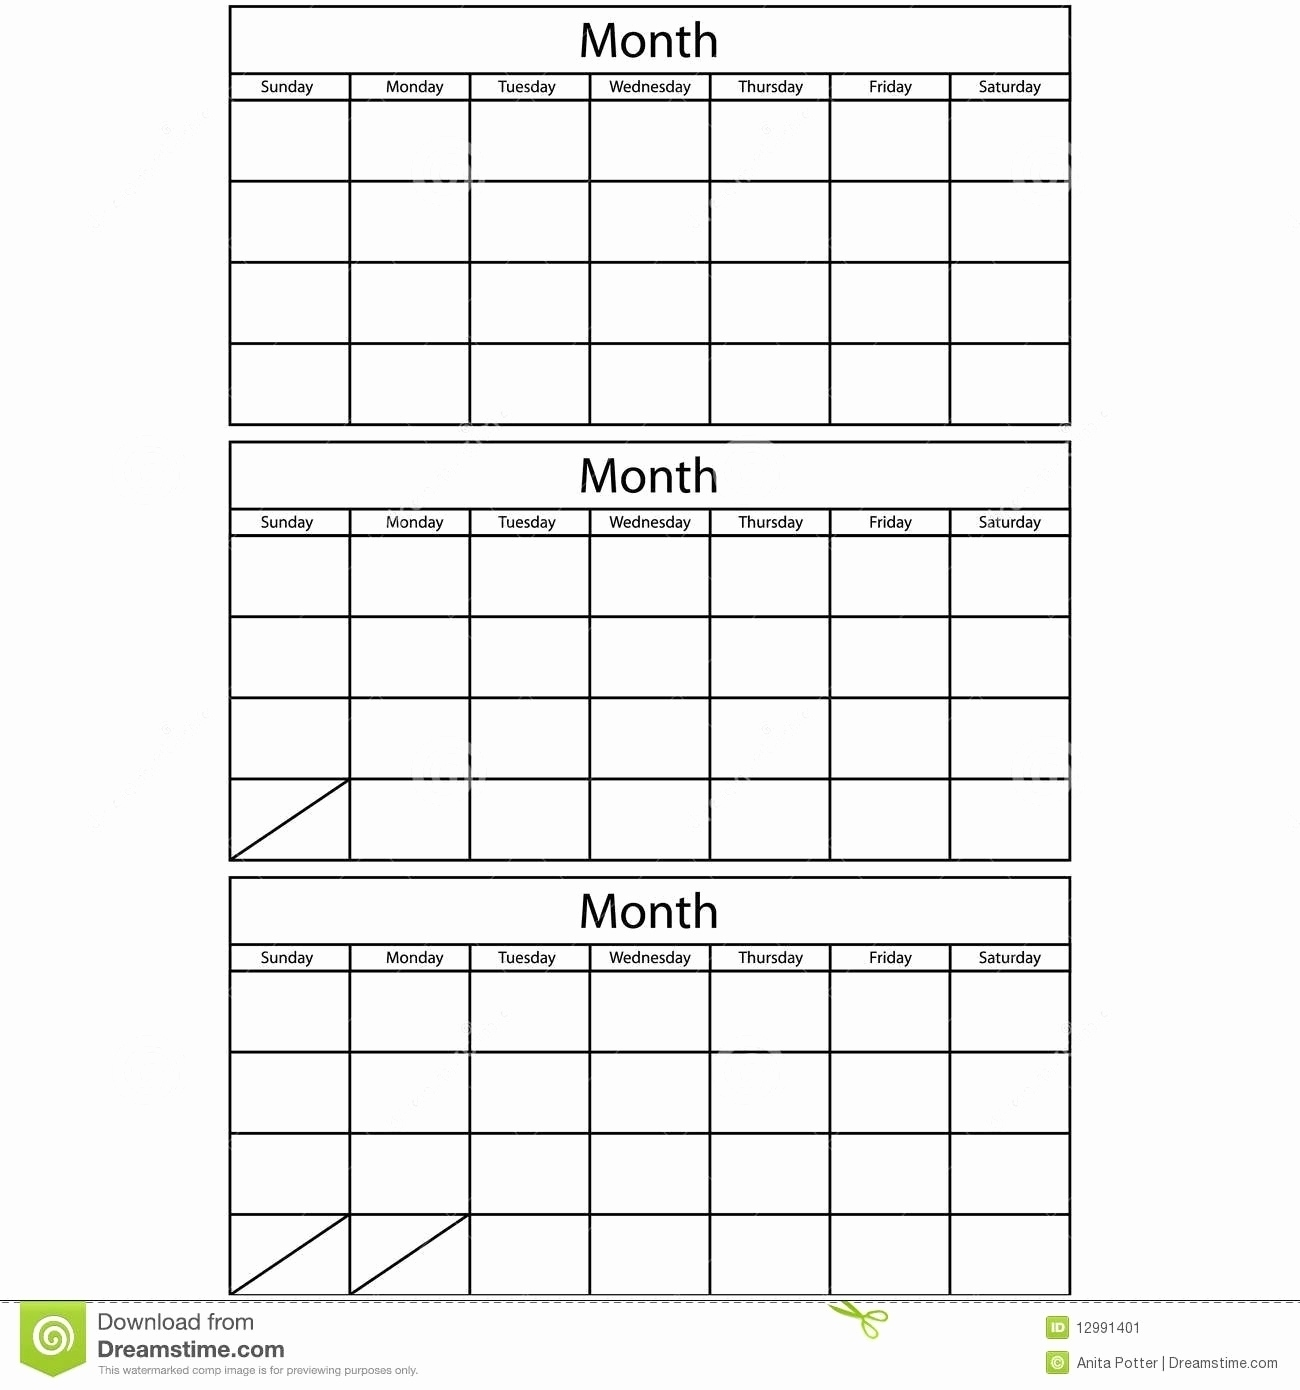 Blank Monthly Lanner Template Calendars To Rint Free Excel Download throughout Free Editable Monthly Calendar Printable